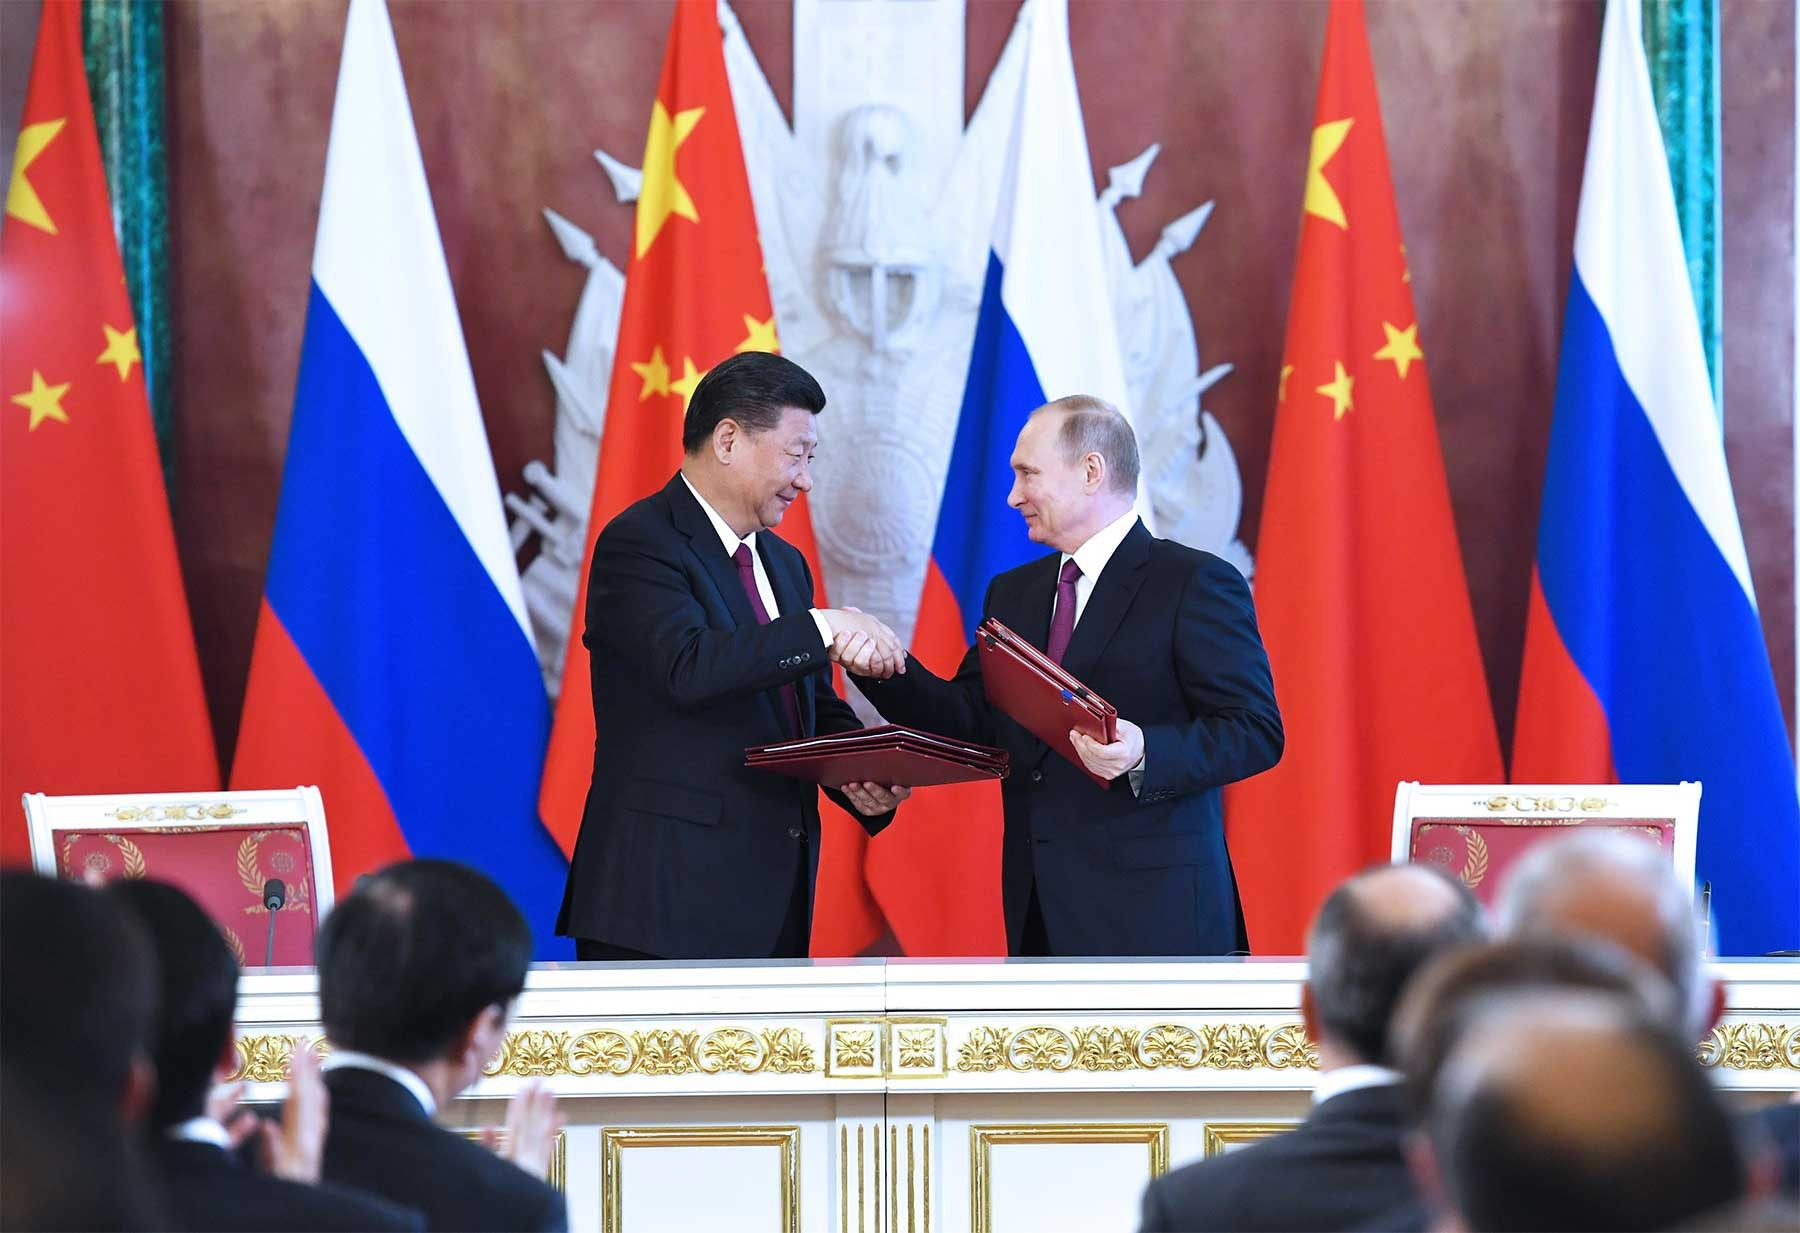 US fails more and more and helps Russia-China rapprochement - Le Devoir